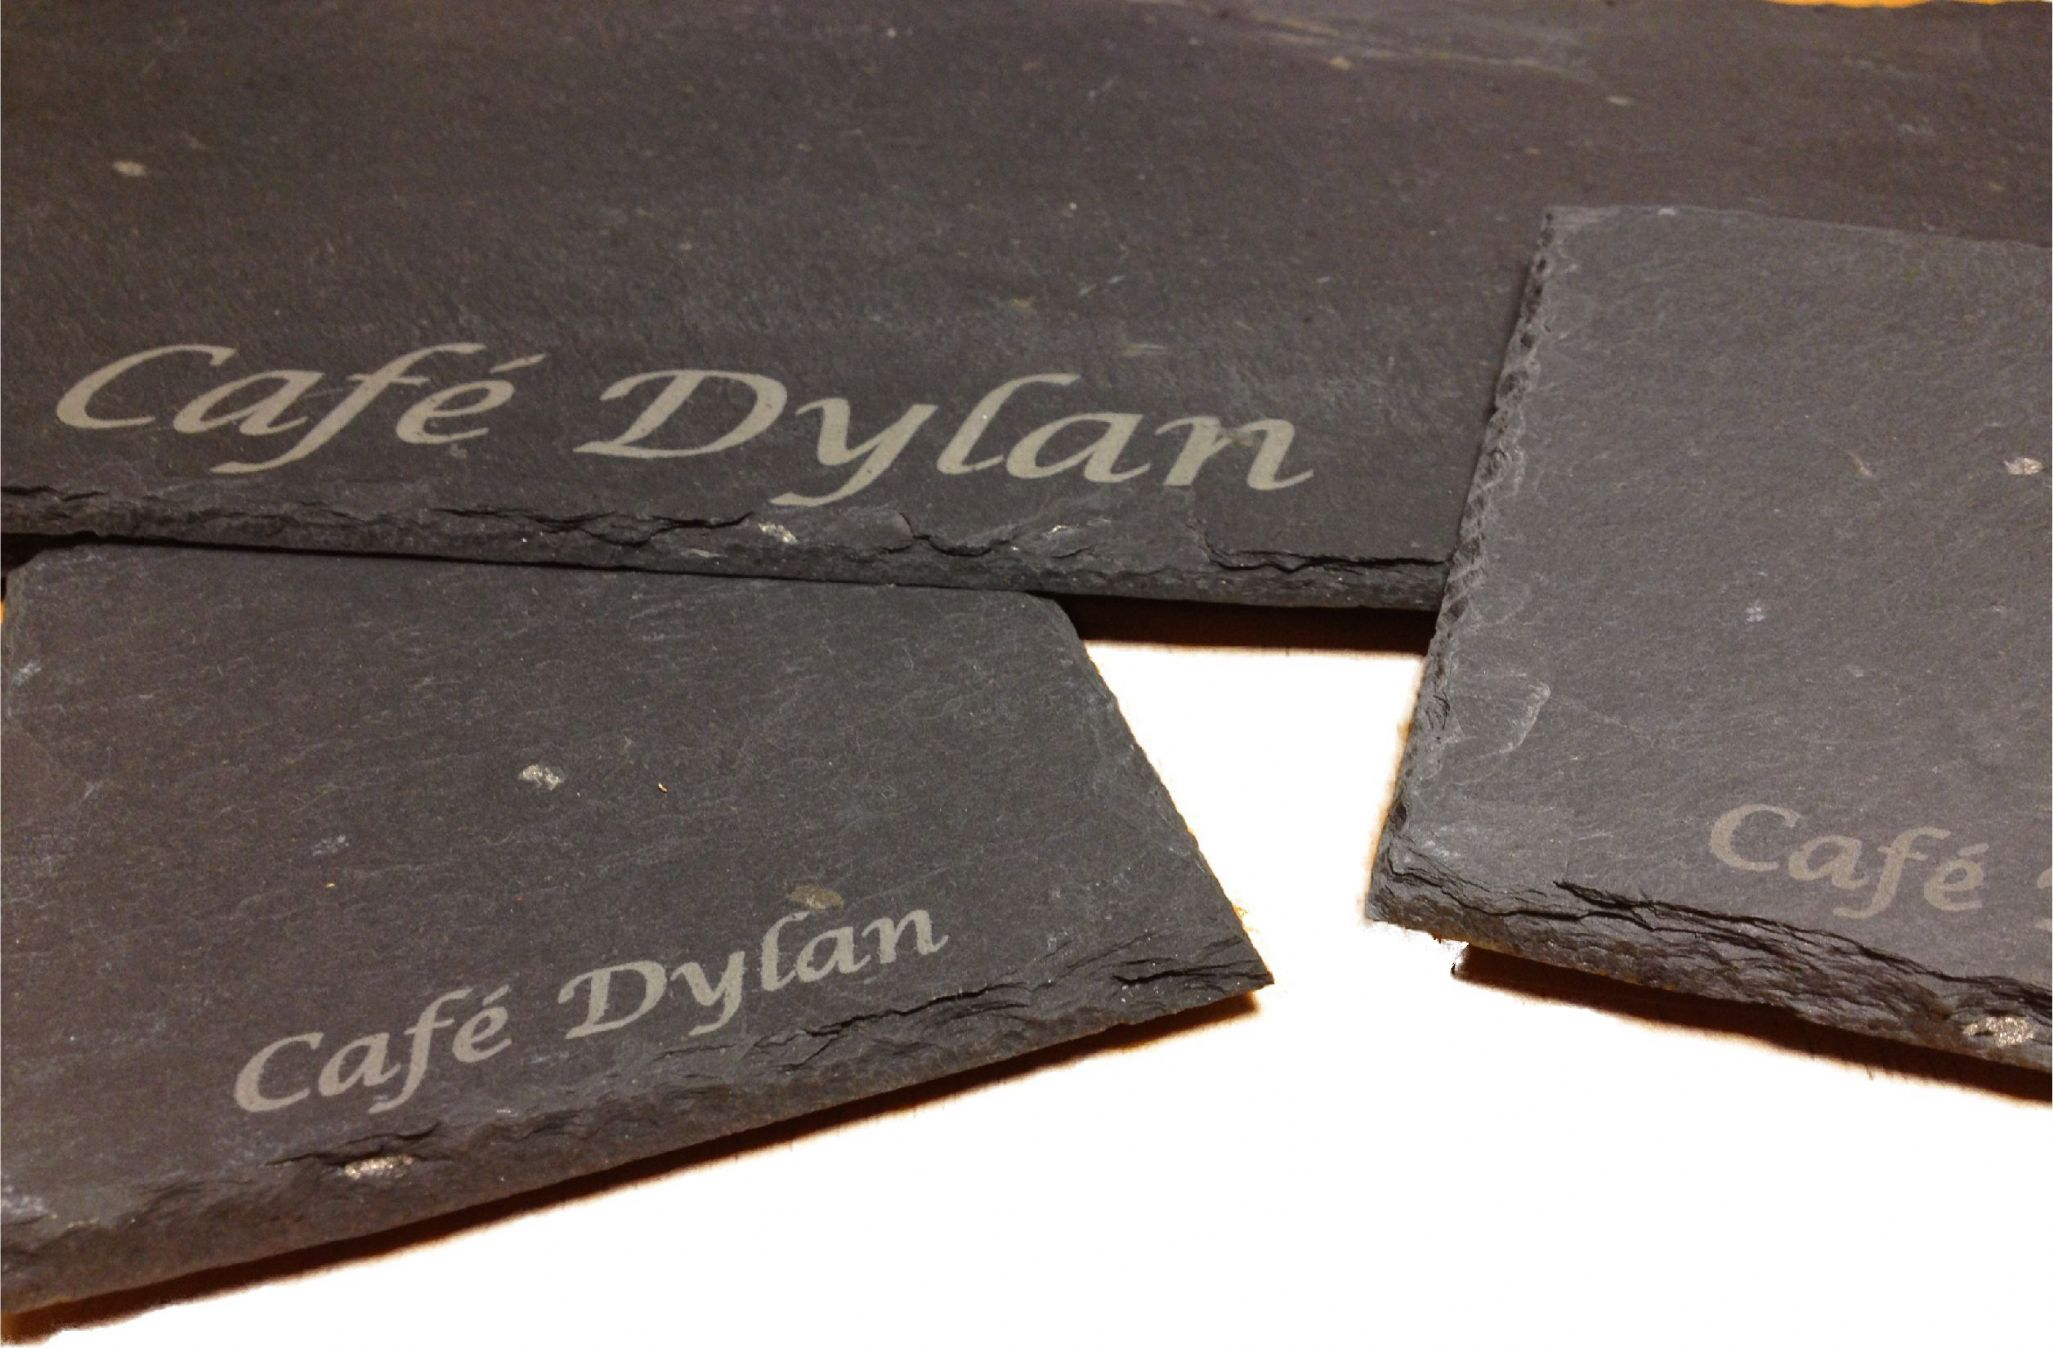 Engraved Slate Serving Plates 25cm x 25cm: www.derwentlasercrafts.co.uk/engraved-slate-serving-plates-25cm-x...